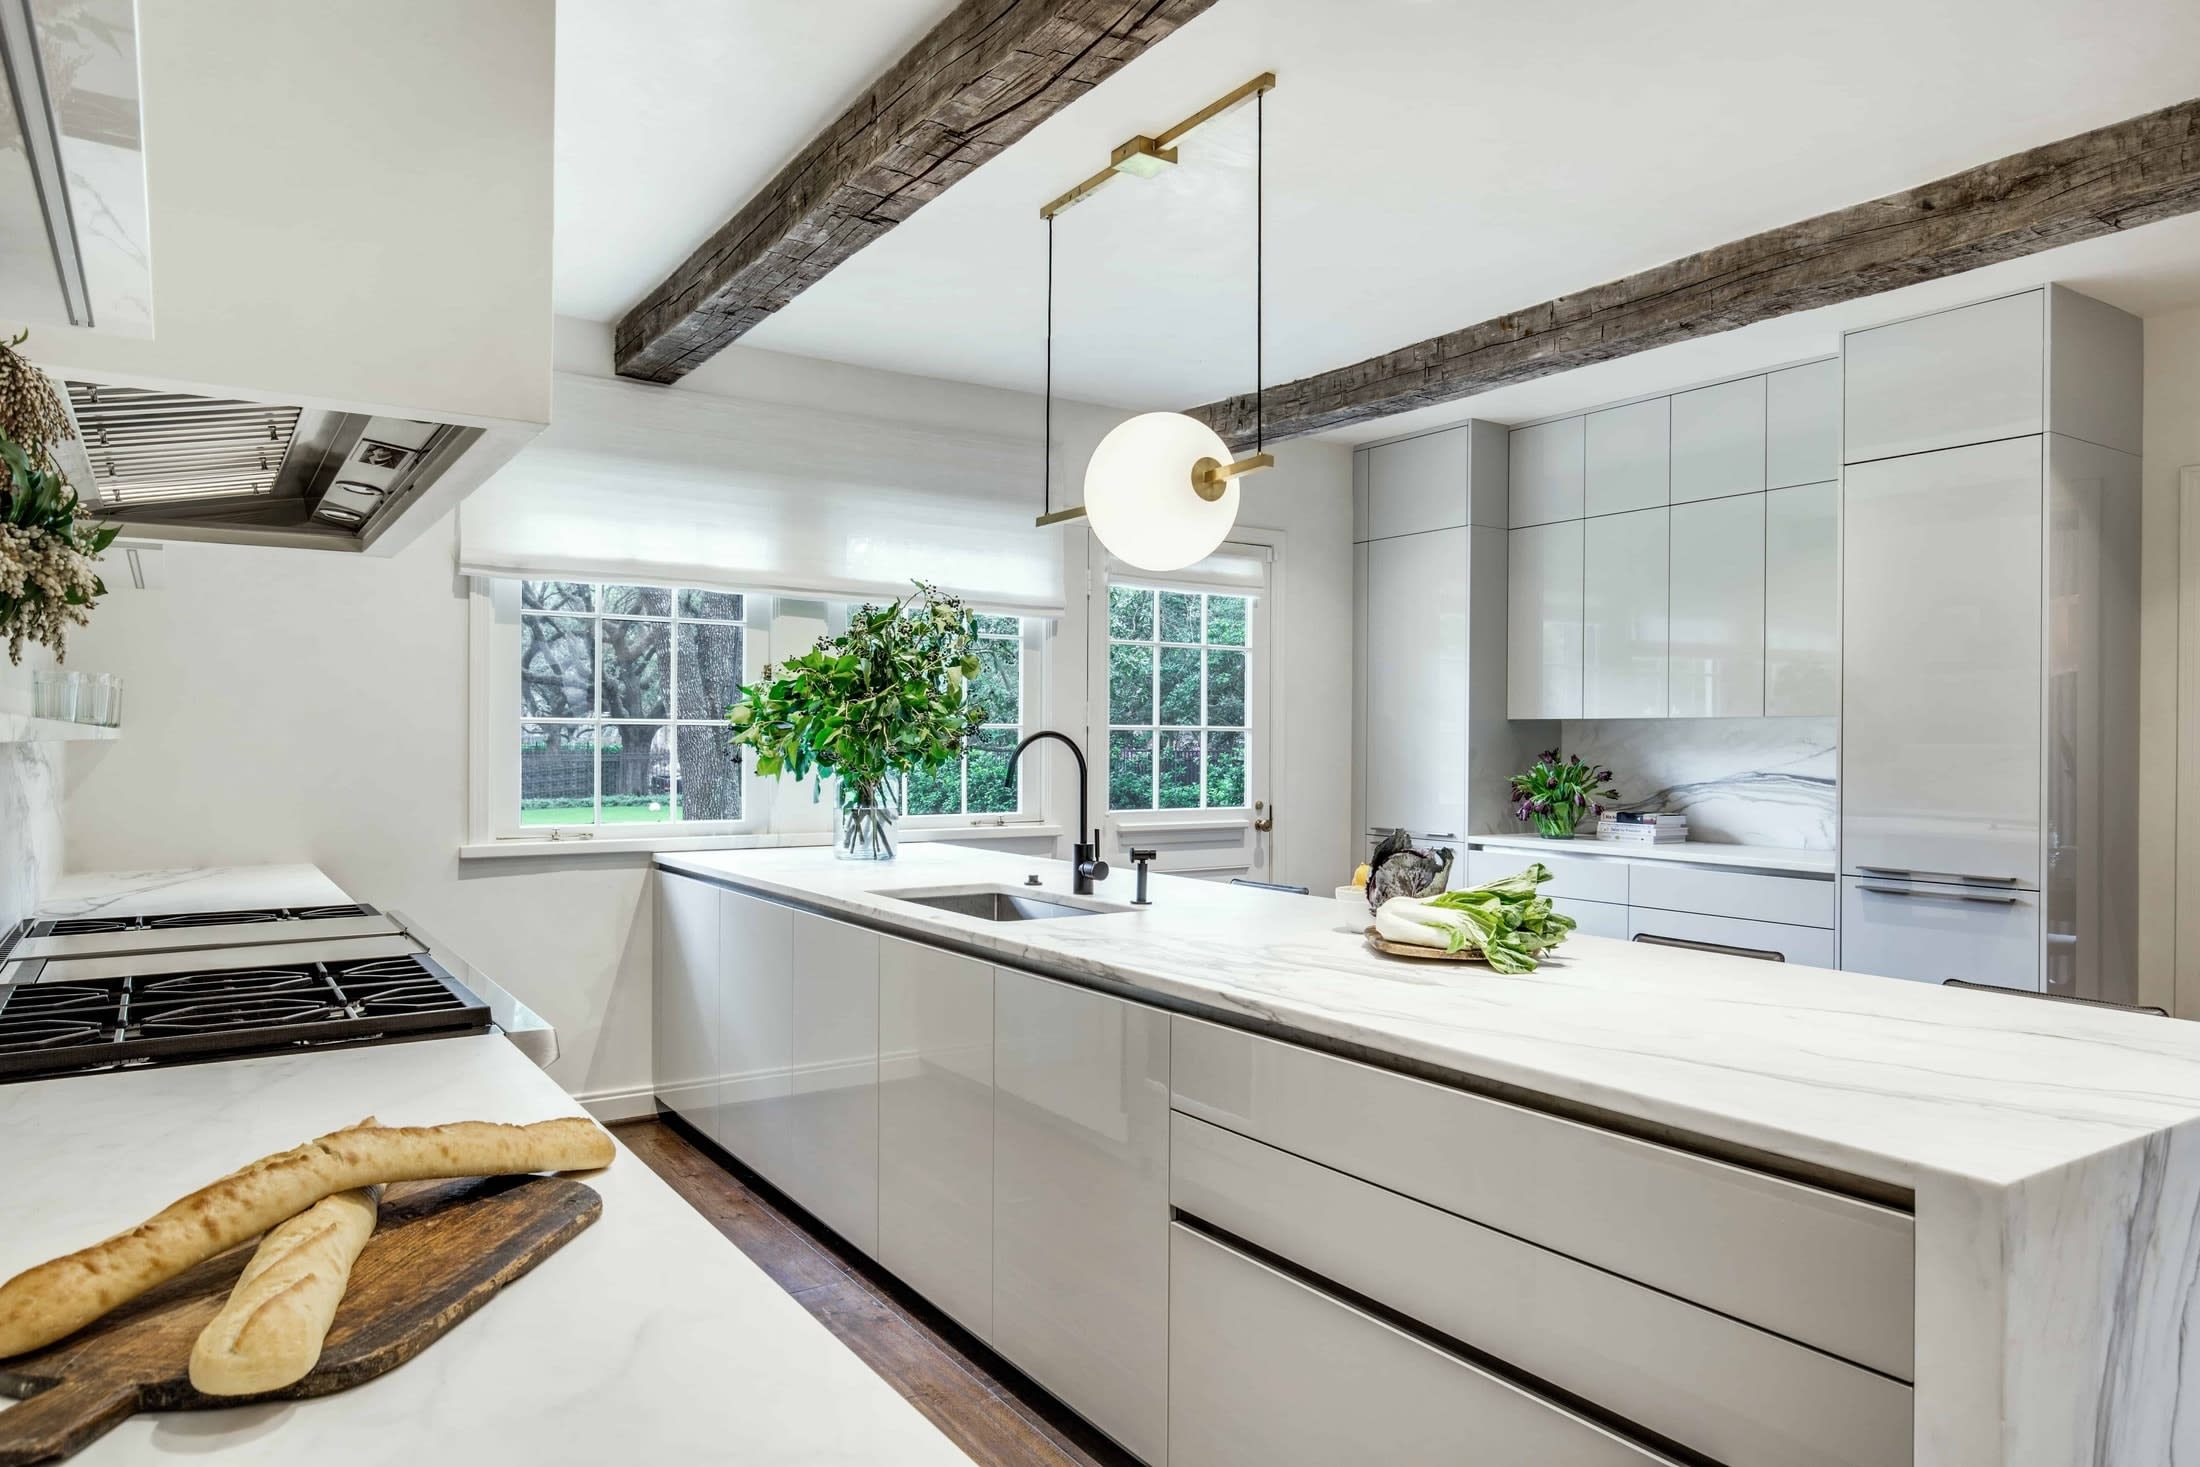 expansive aria marble cabinetry by eggersmann takes center stage in the german manufactured kitchen featured in a remodel of a 1939 home in the Houston Museum district